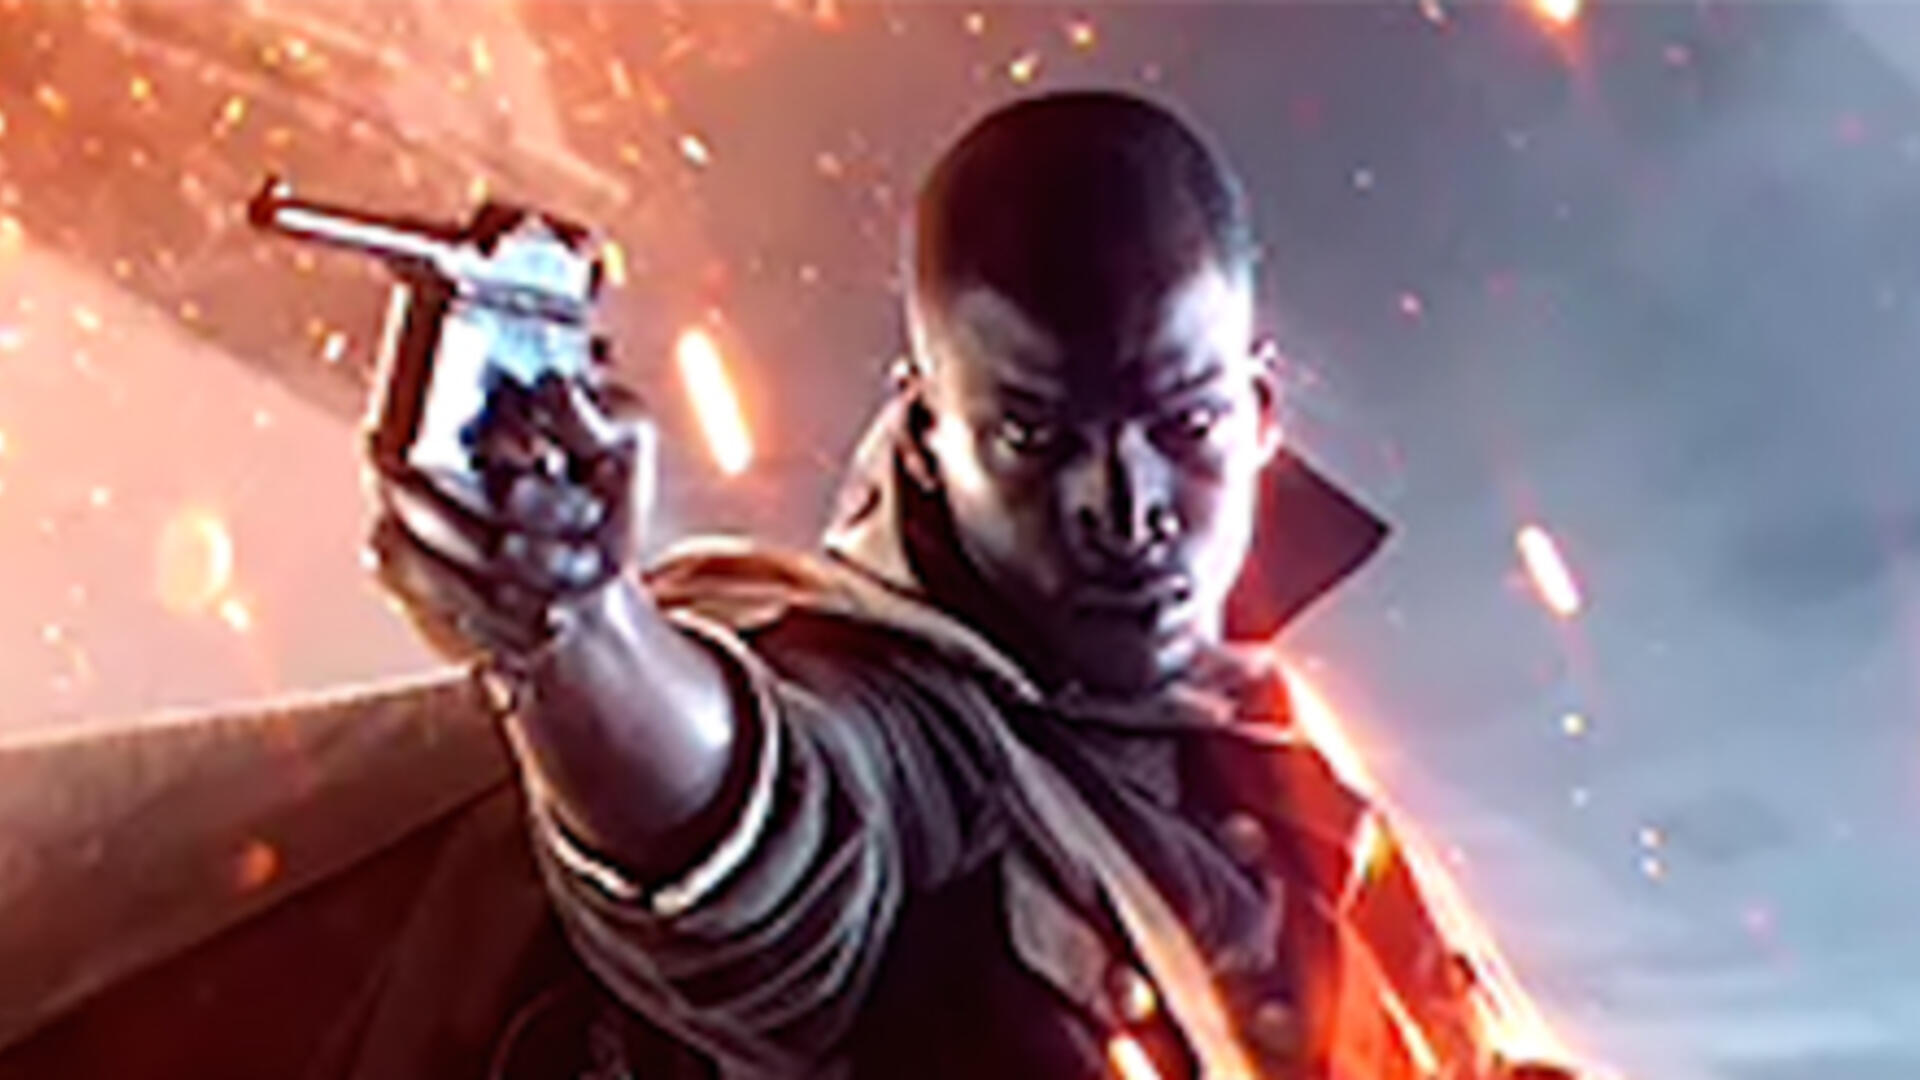 Battlefield 1 Guide - Tips and Tricks, Hints, Best Weapons to Use